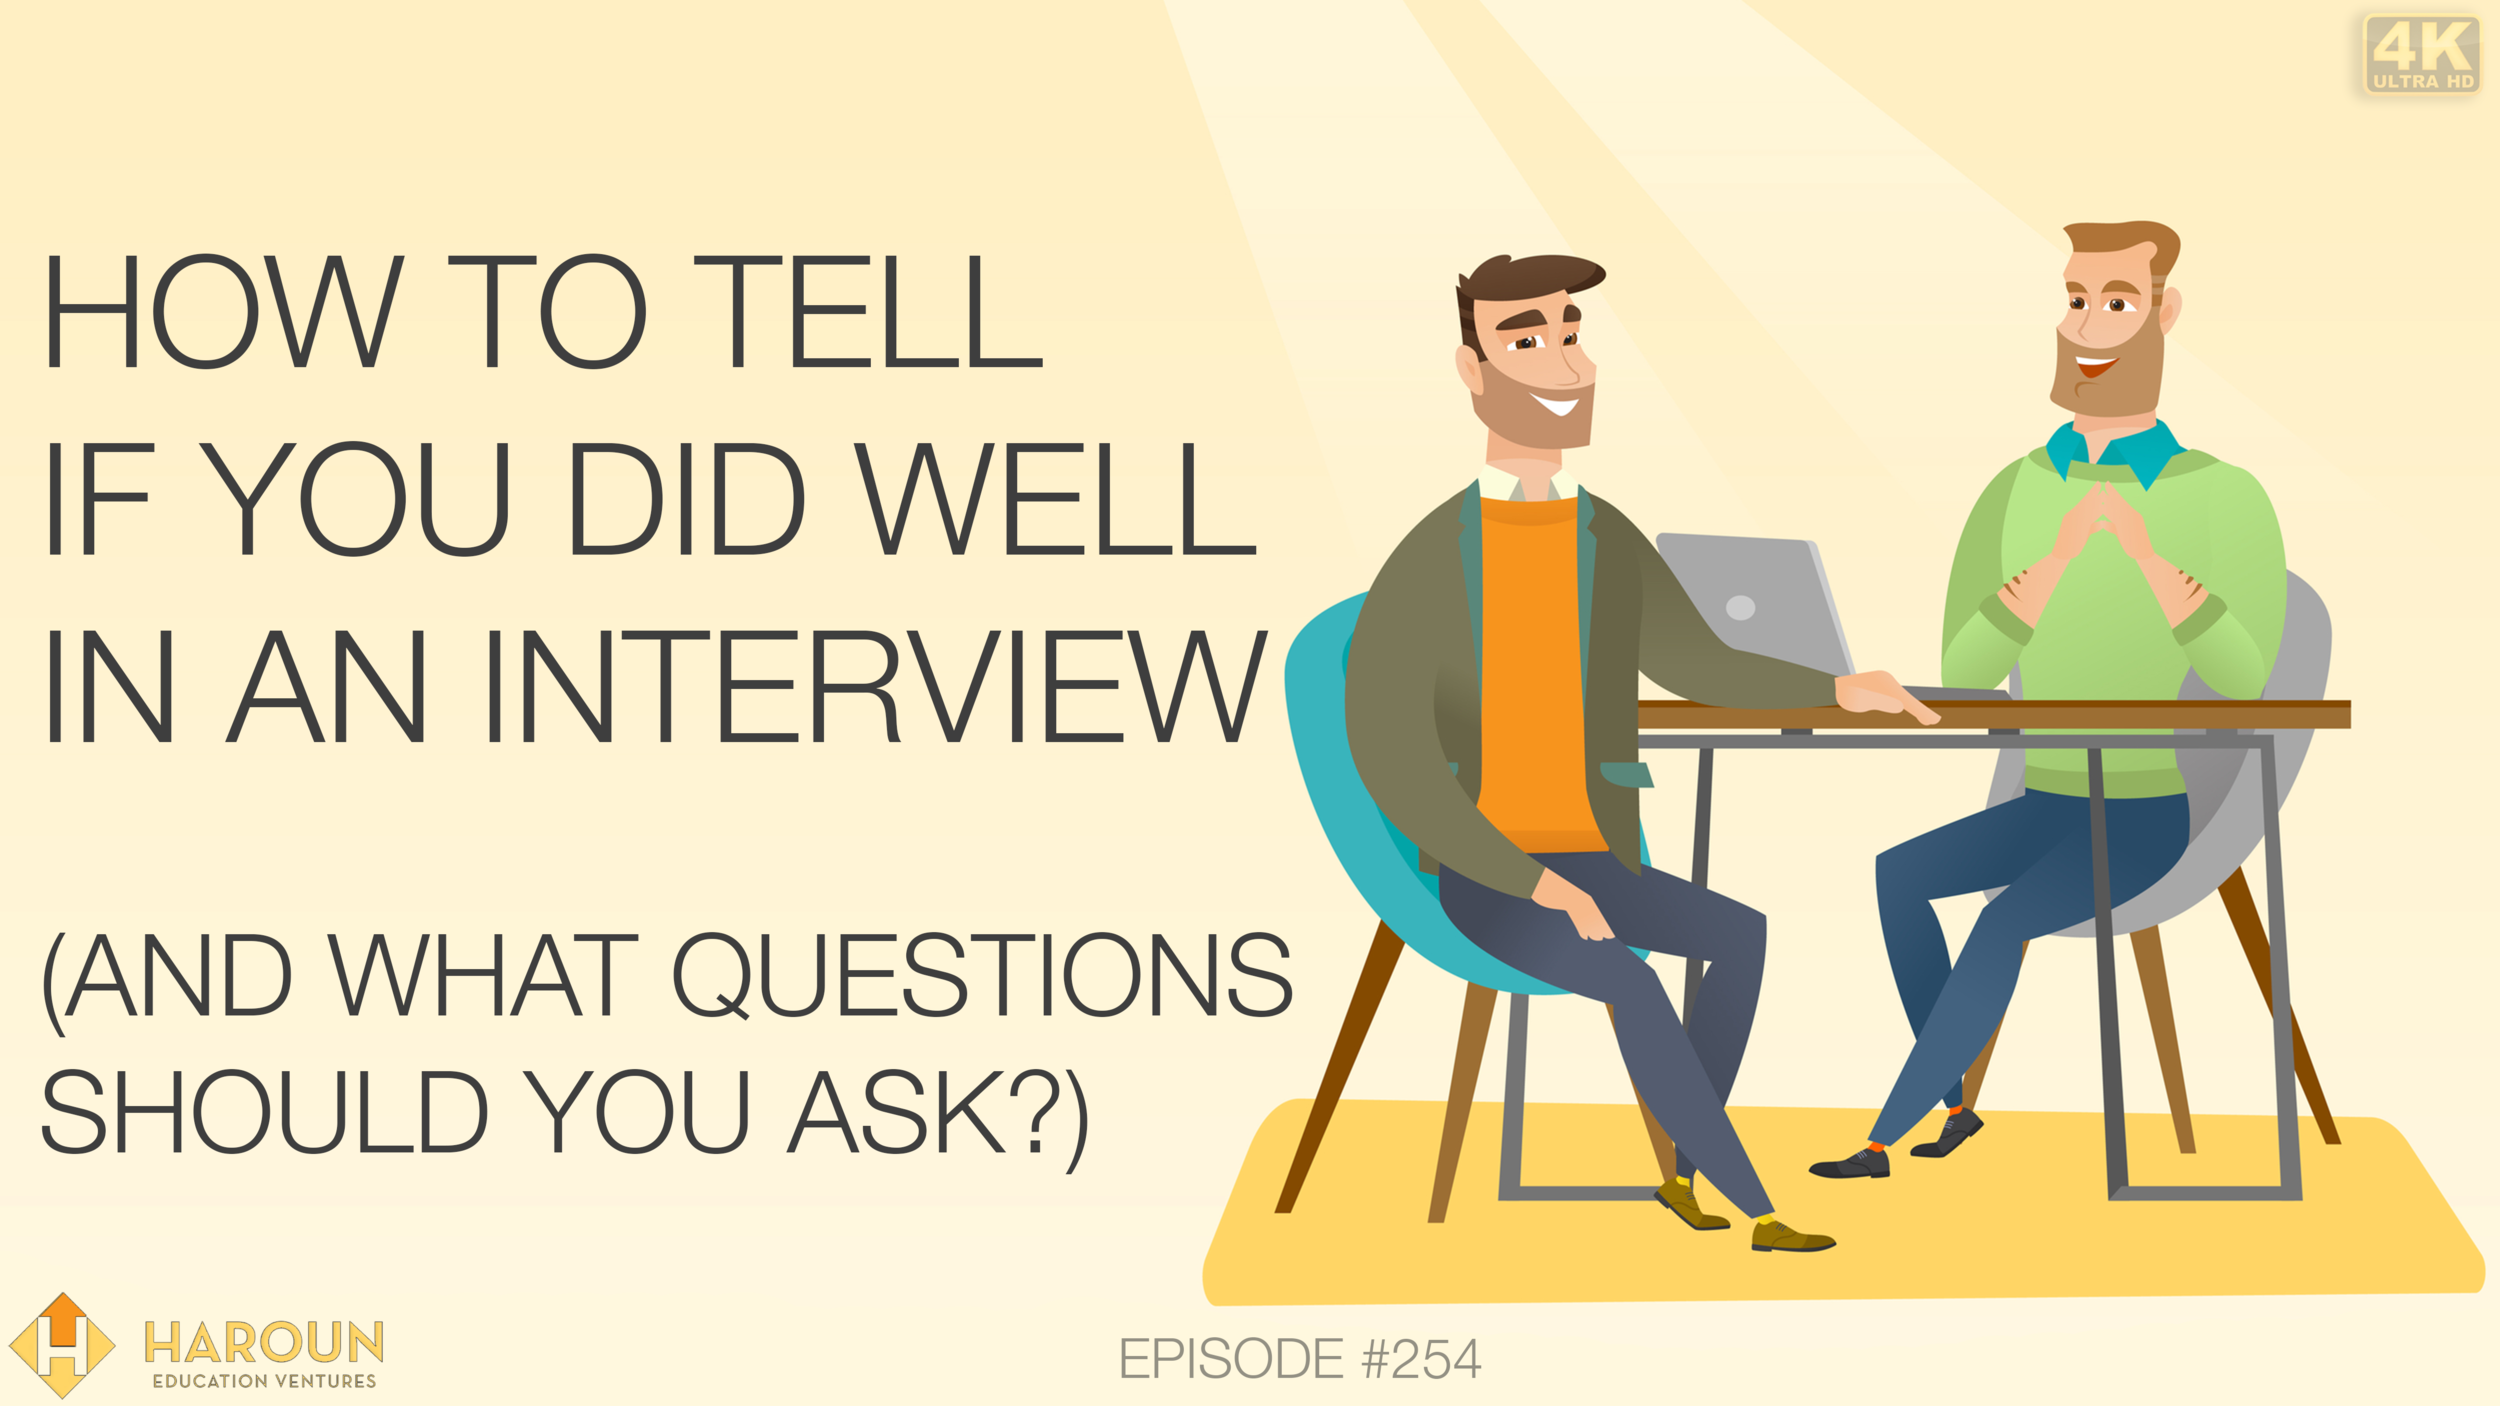 DAY_254_4_10_19_HOW TO KNOW IF DONE WELL IN AN INTERVIEW.png